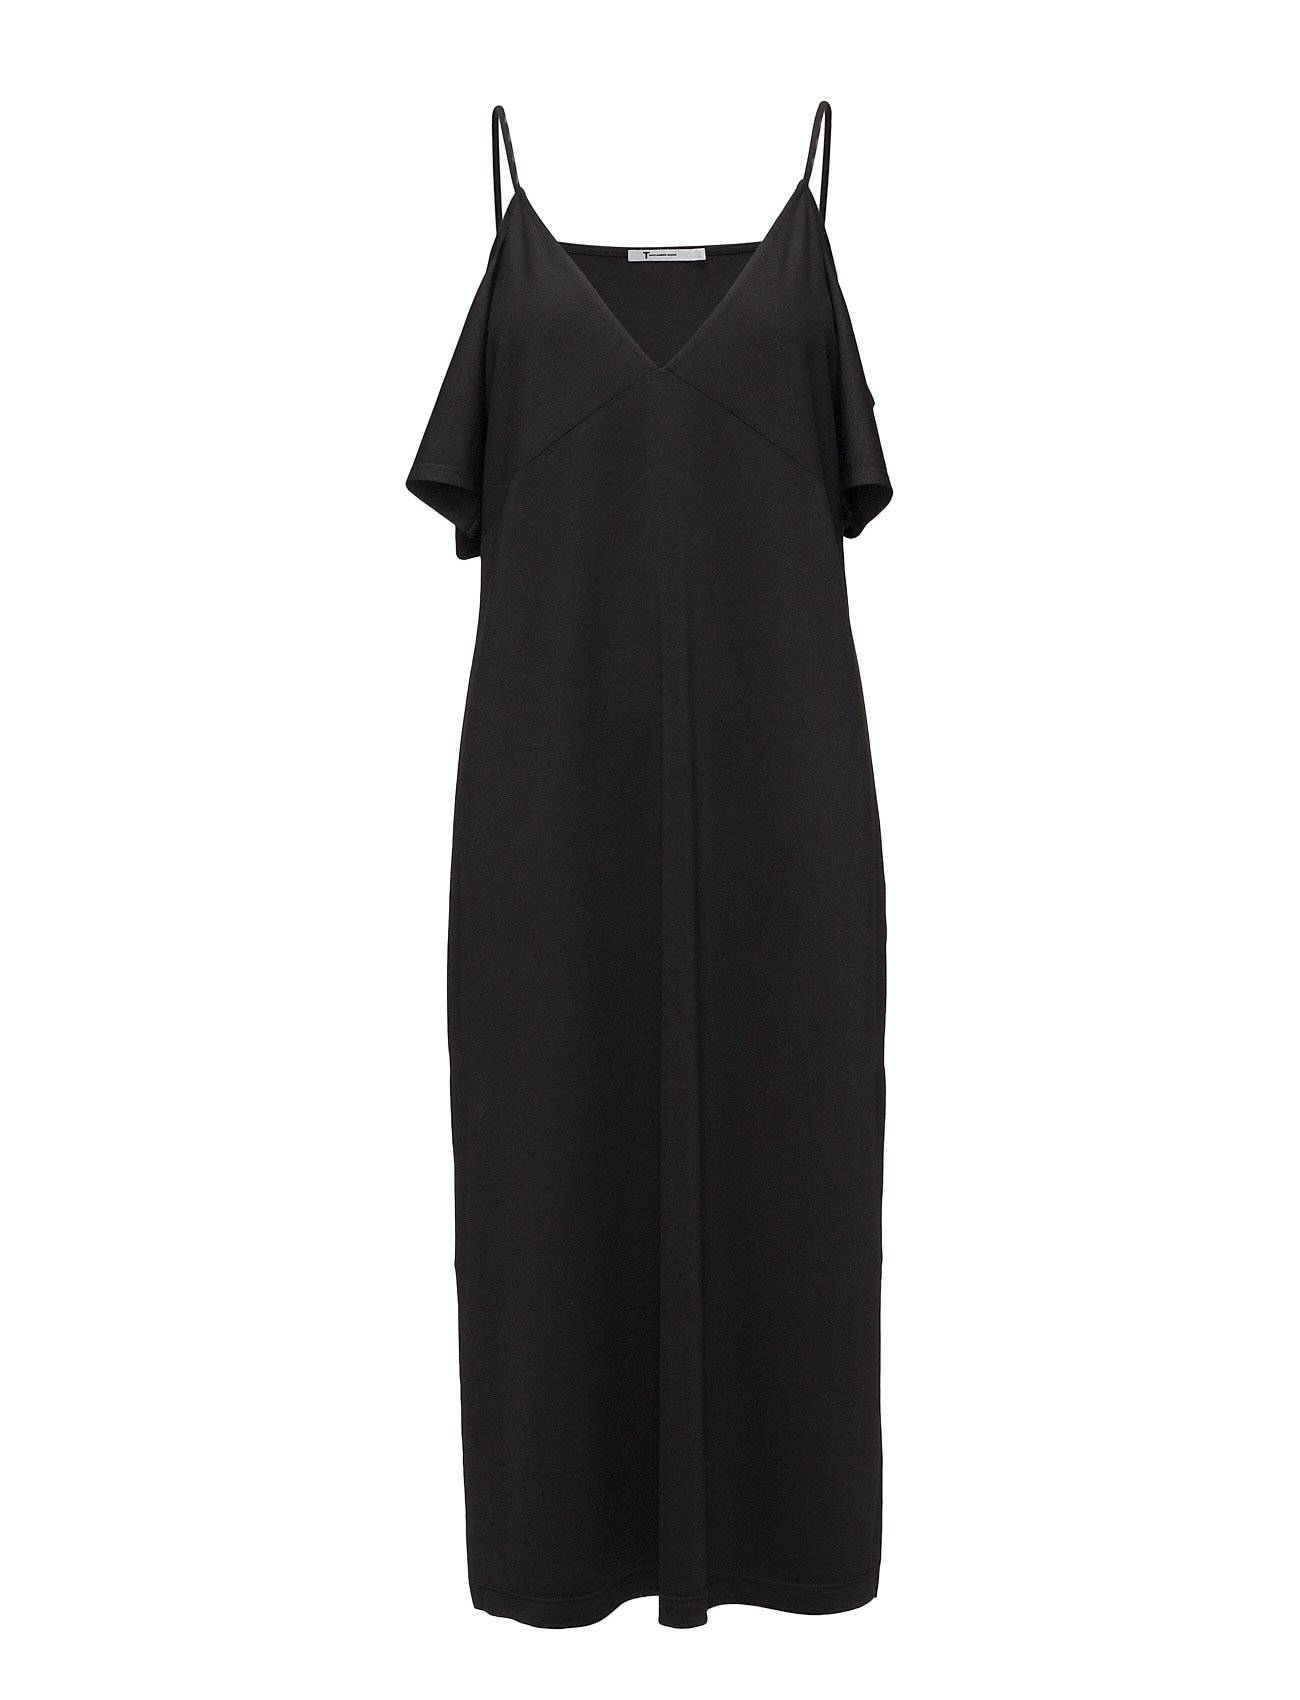 T by Alexander Wang Lux Ponte Cold Shoulder Midi Dress With Straps